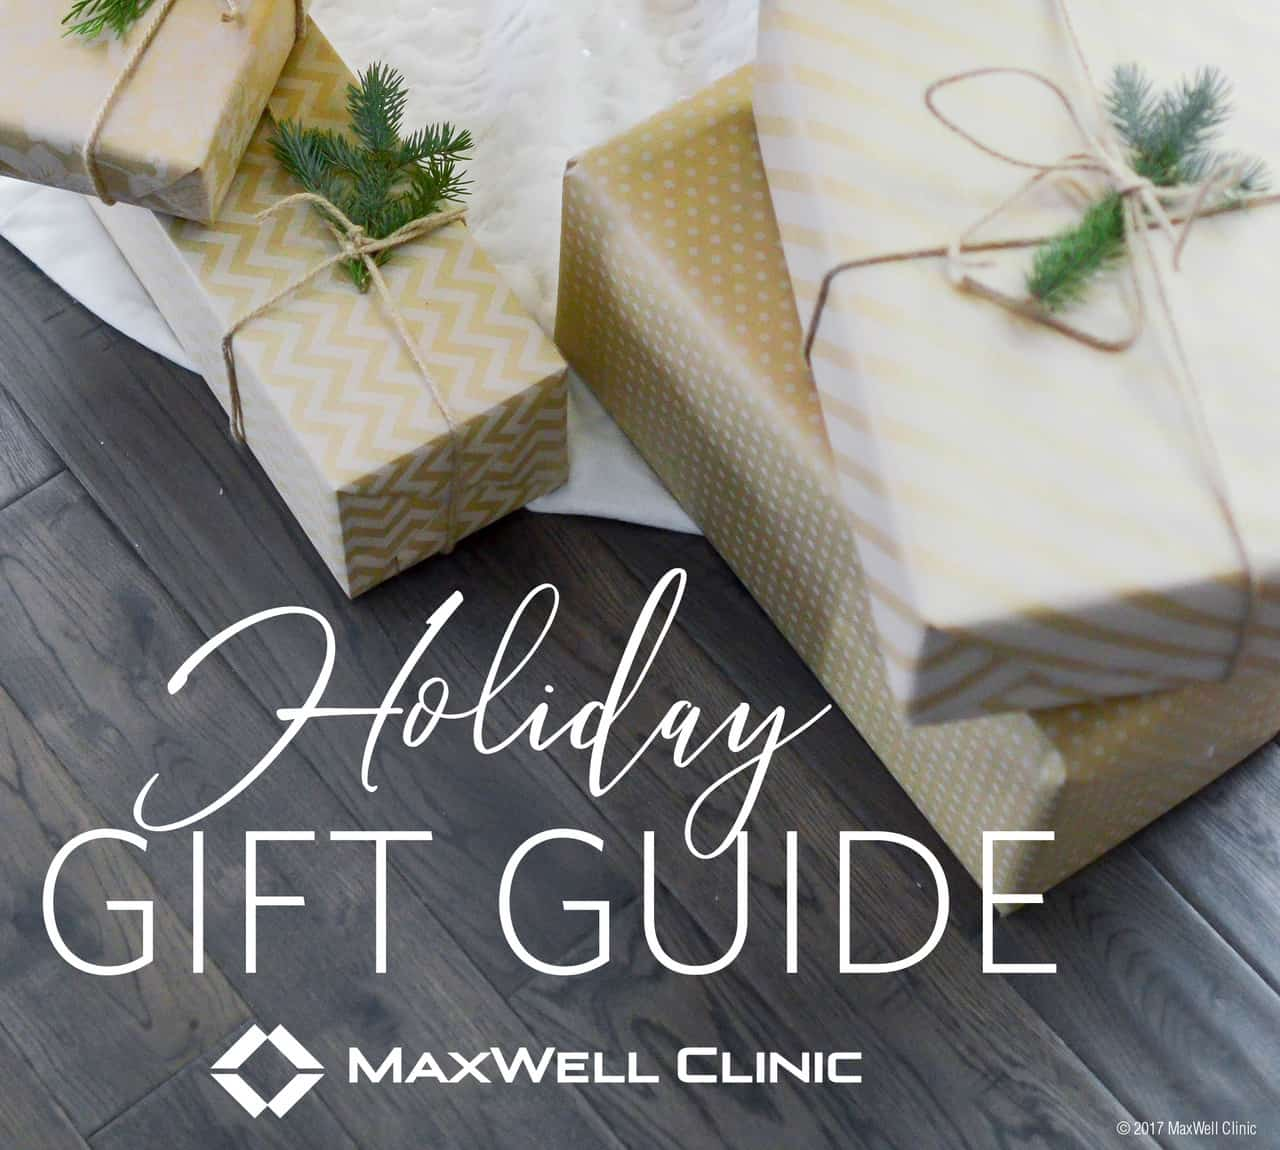 MaxWell Clinic's Holiday Gift Guide